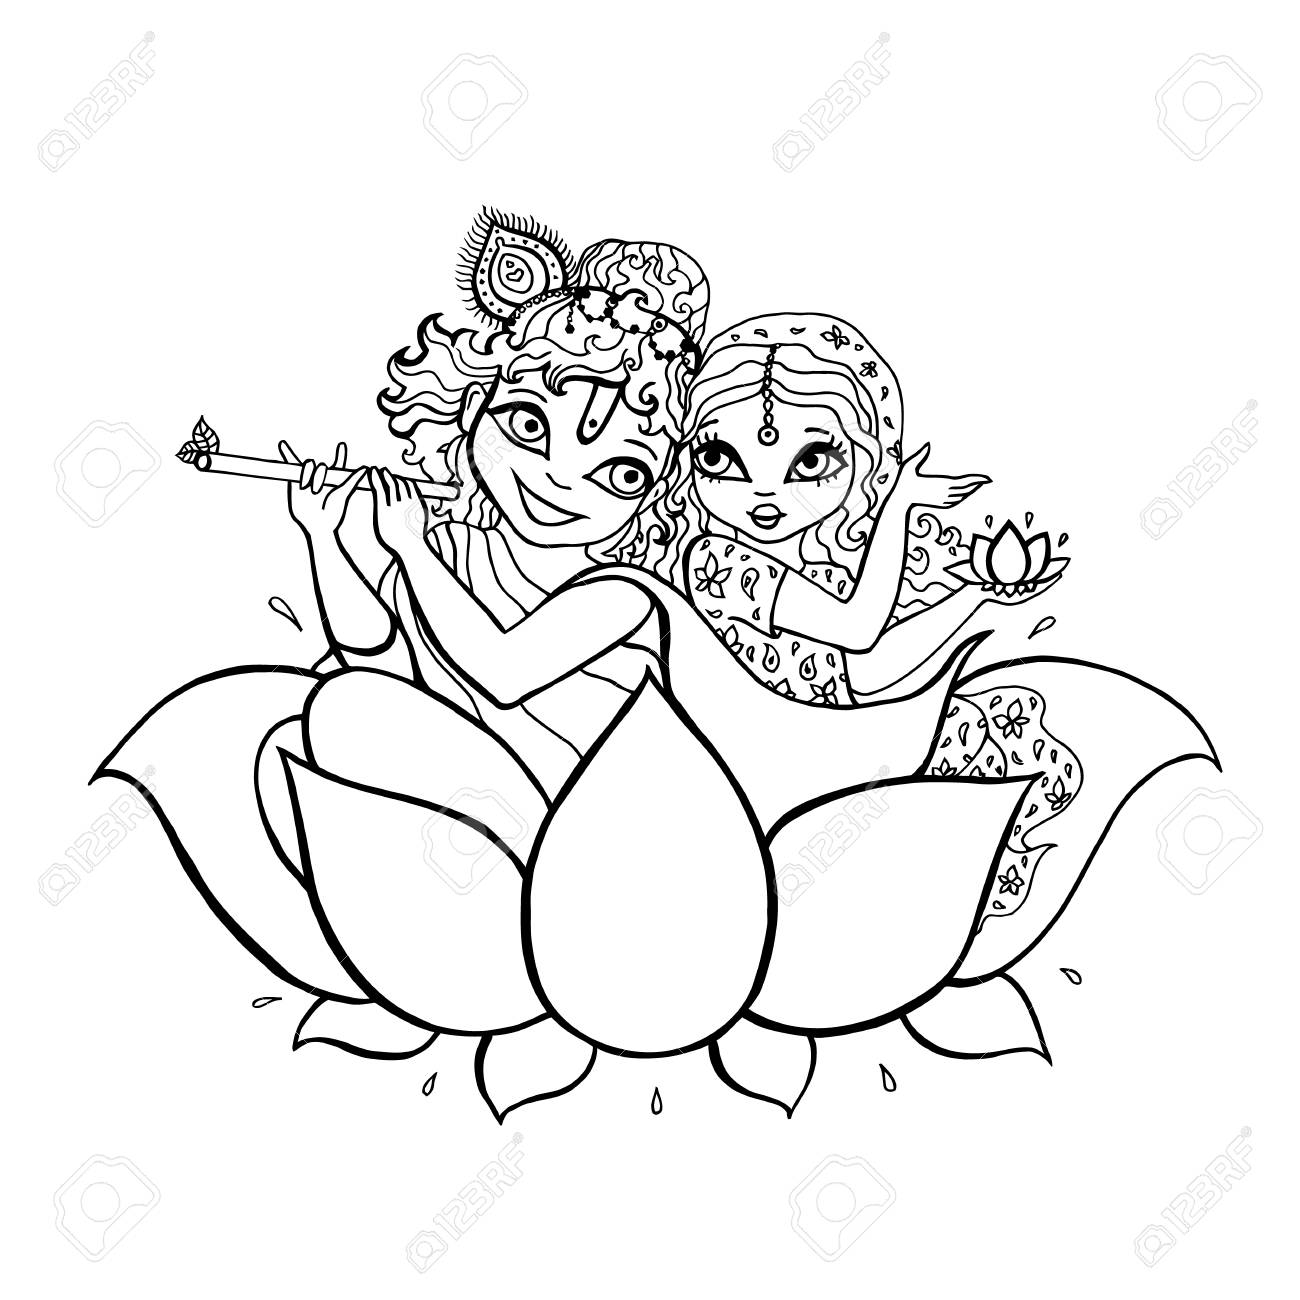 1300x1300 Hindu God. Radha, Krishna Vector Hand Drawn Illustration Royalty